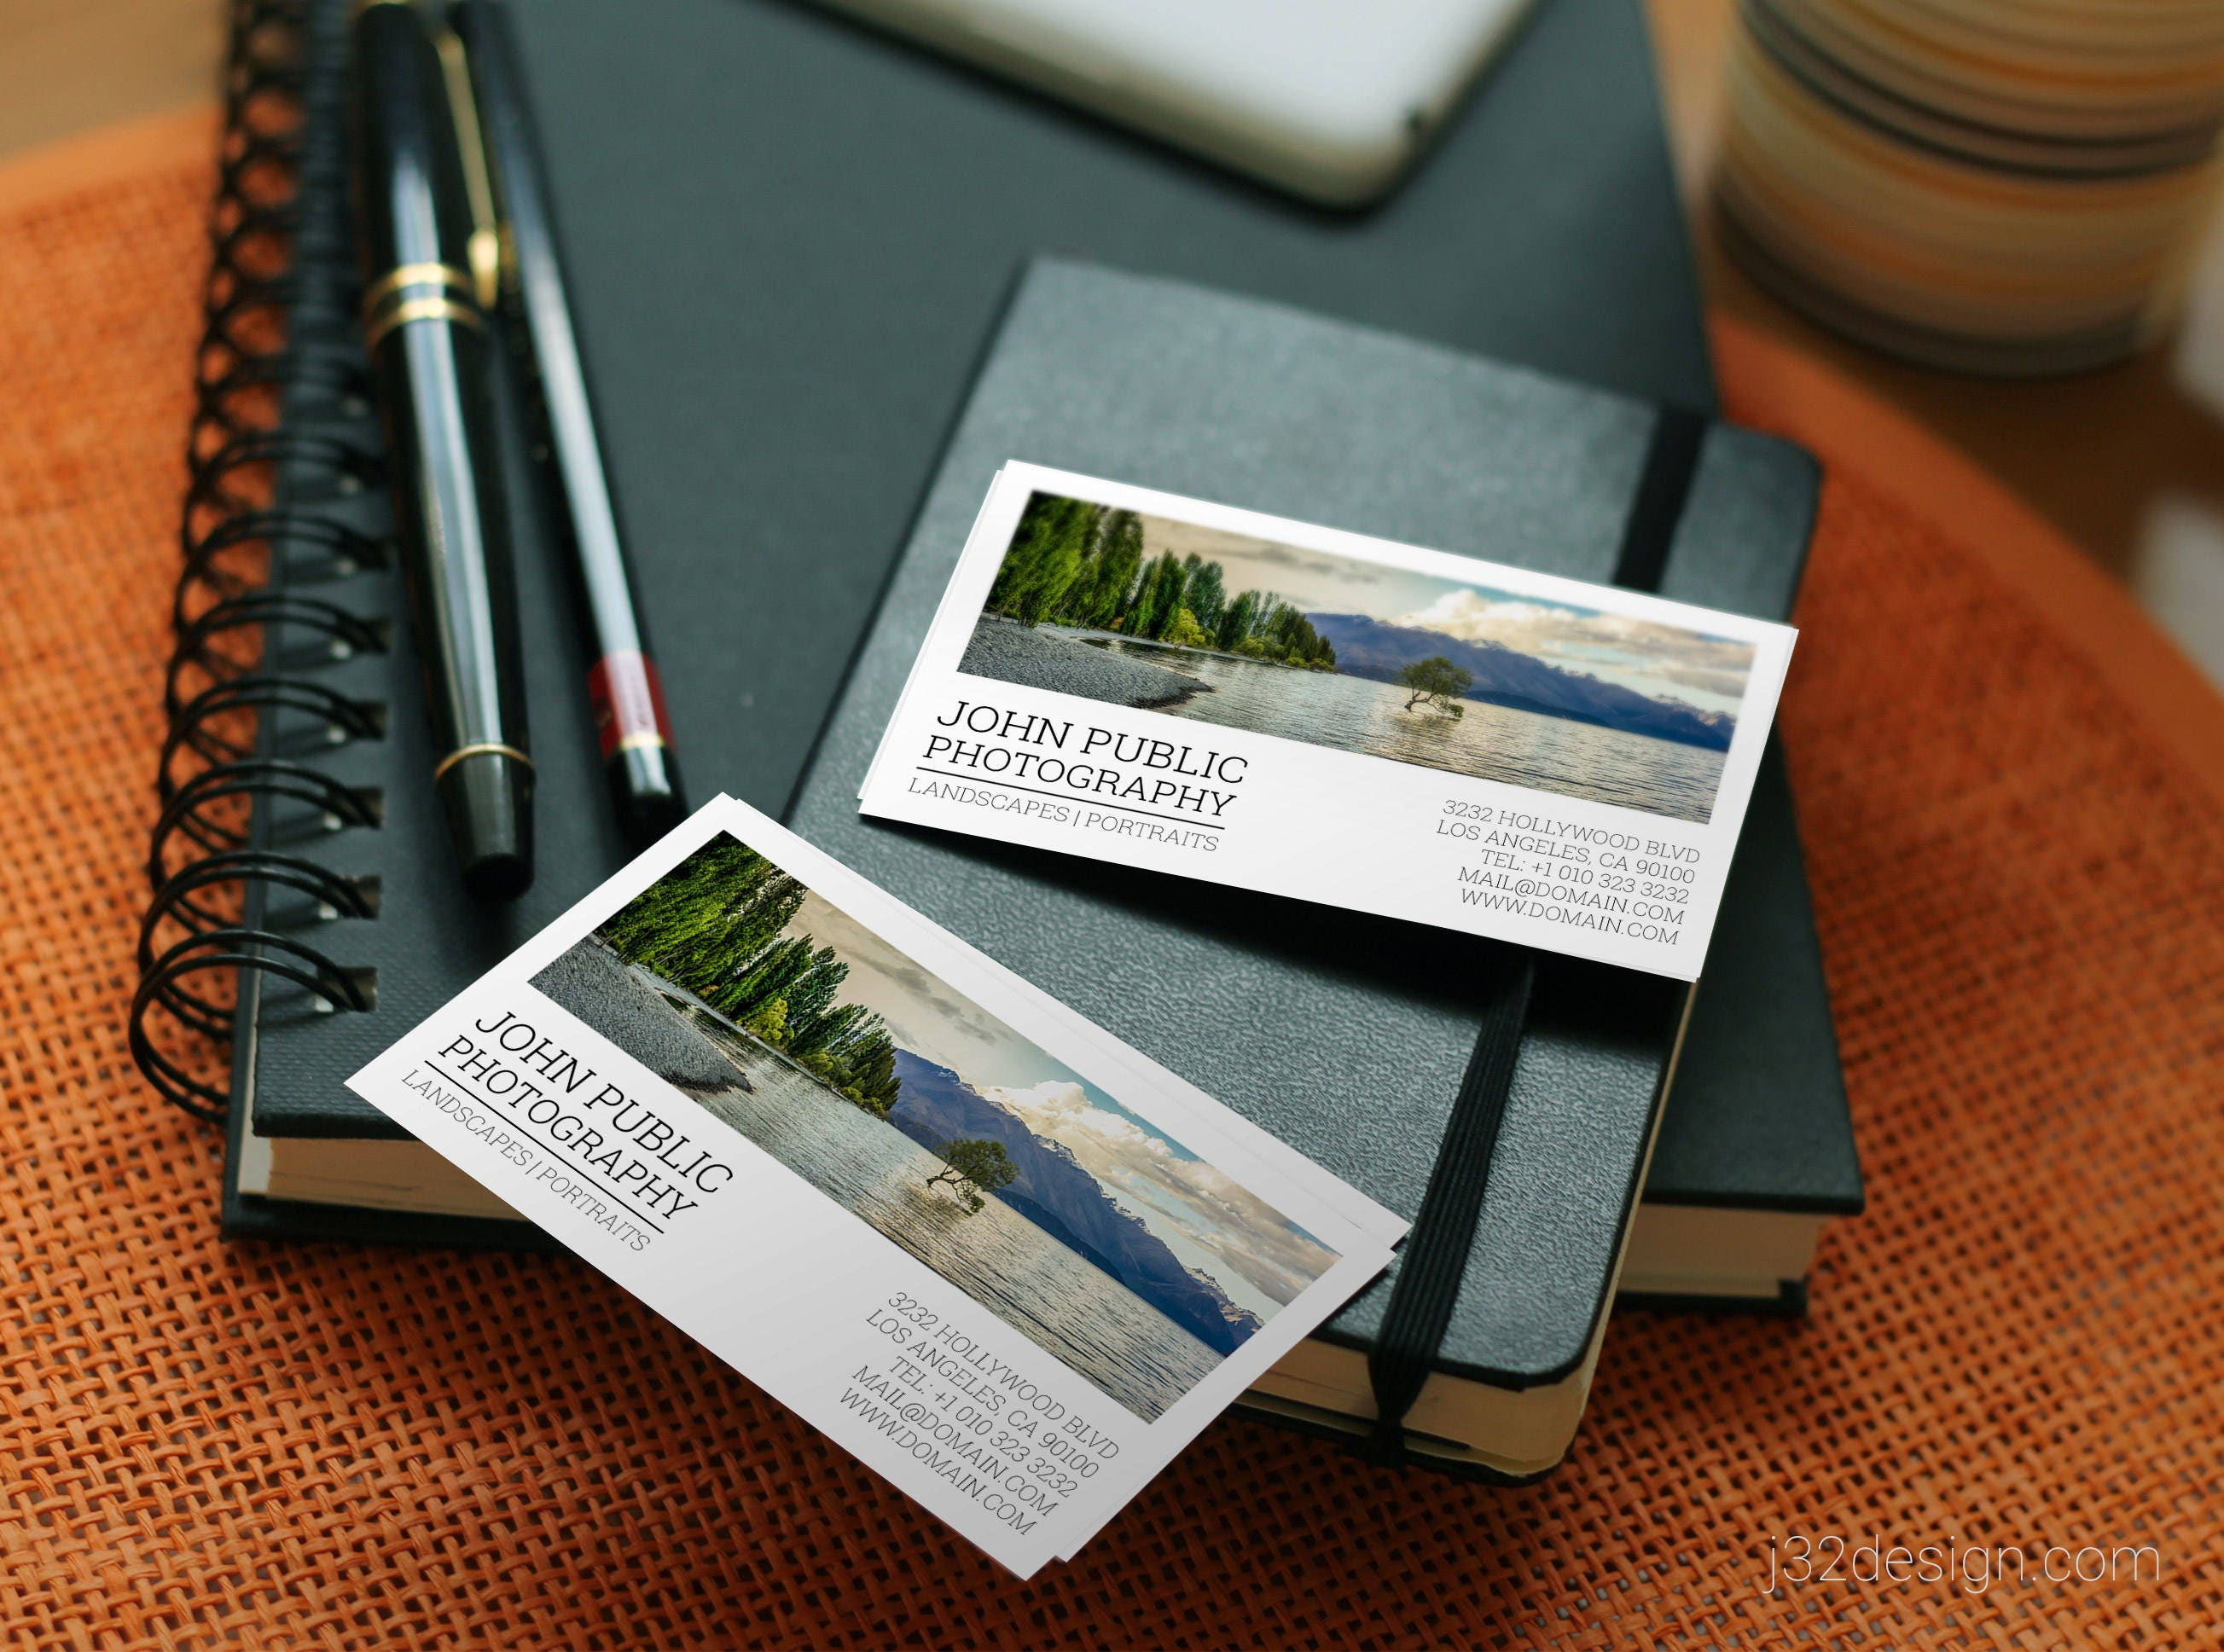 Photographer business cards template psd instant download photographer business cards template psd instant download portrait landscape photographers accmission Choice Image